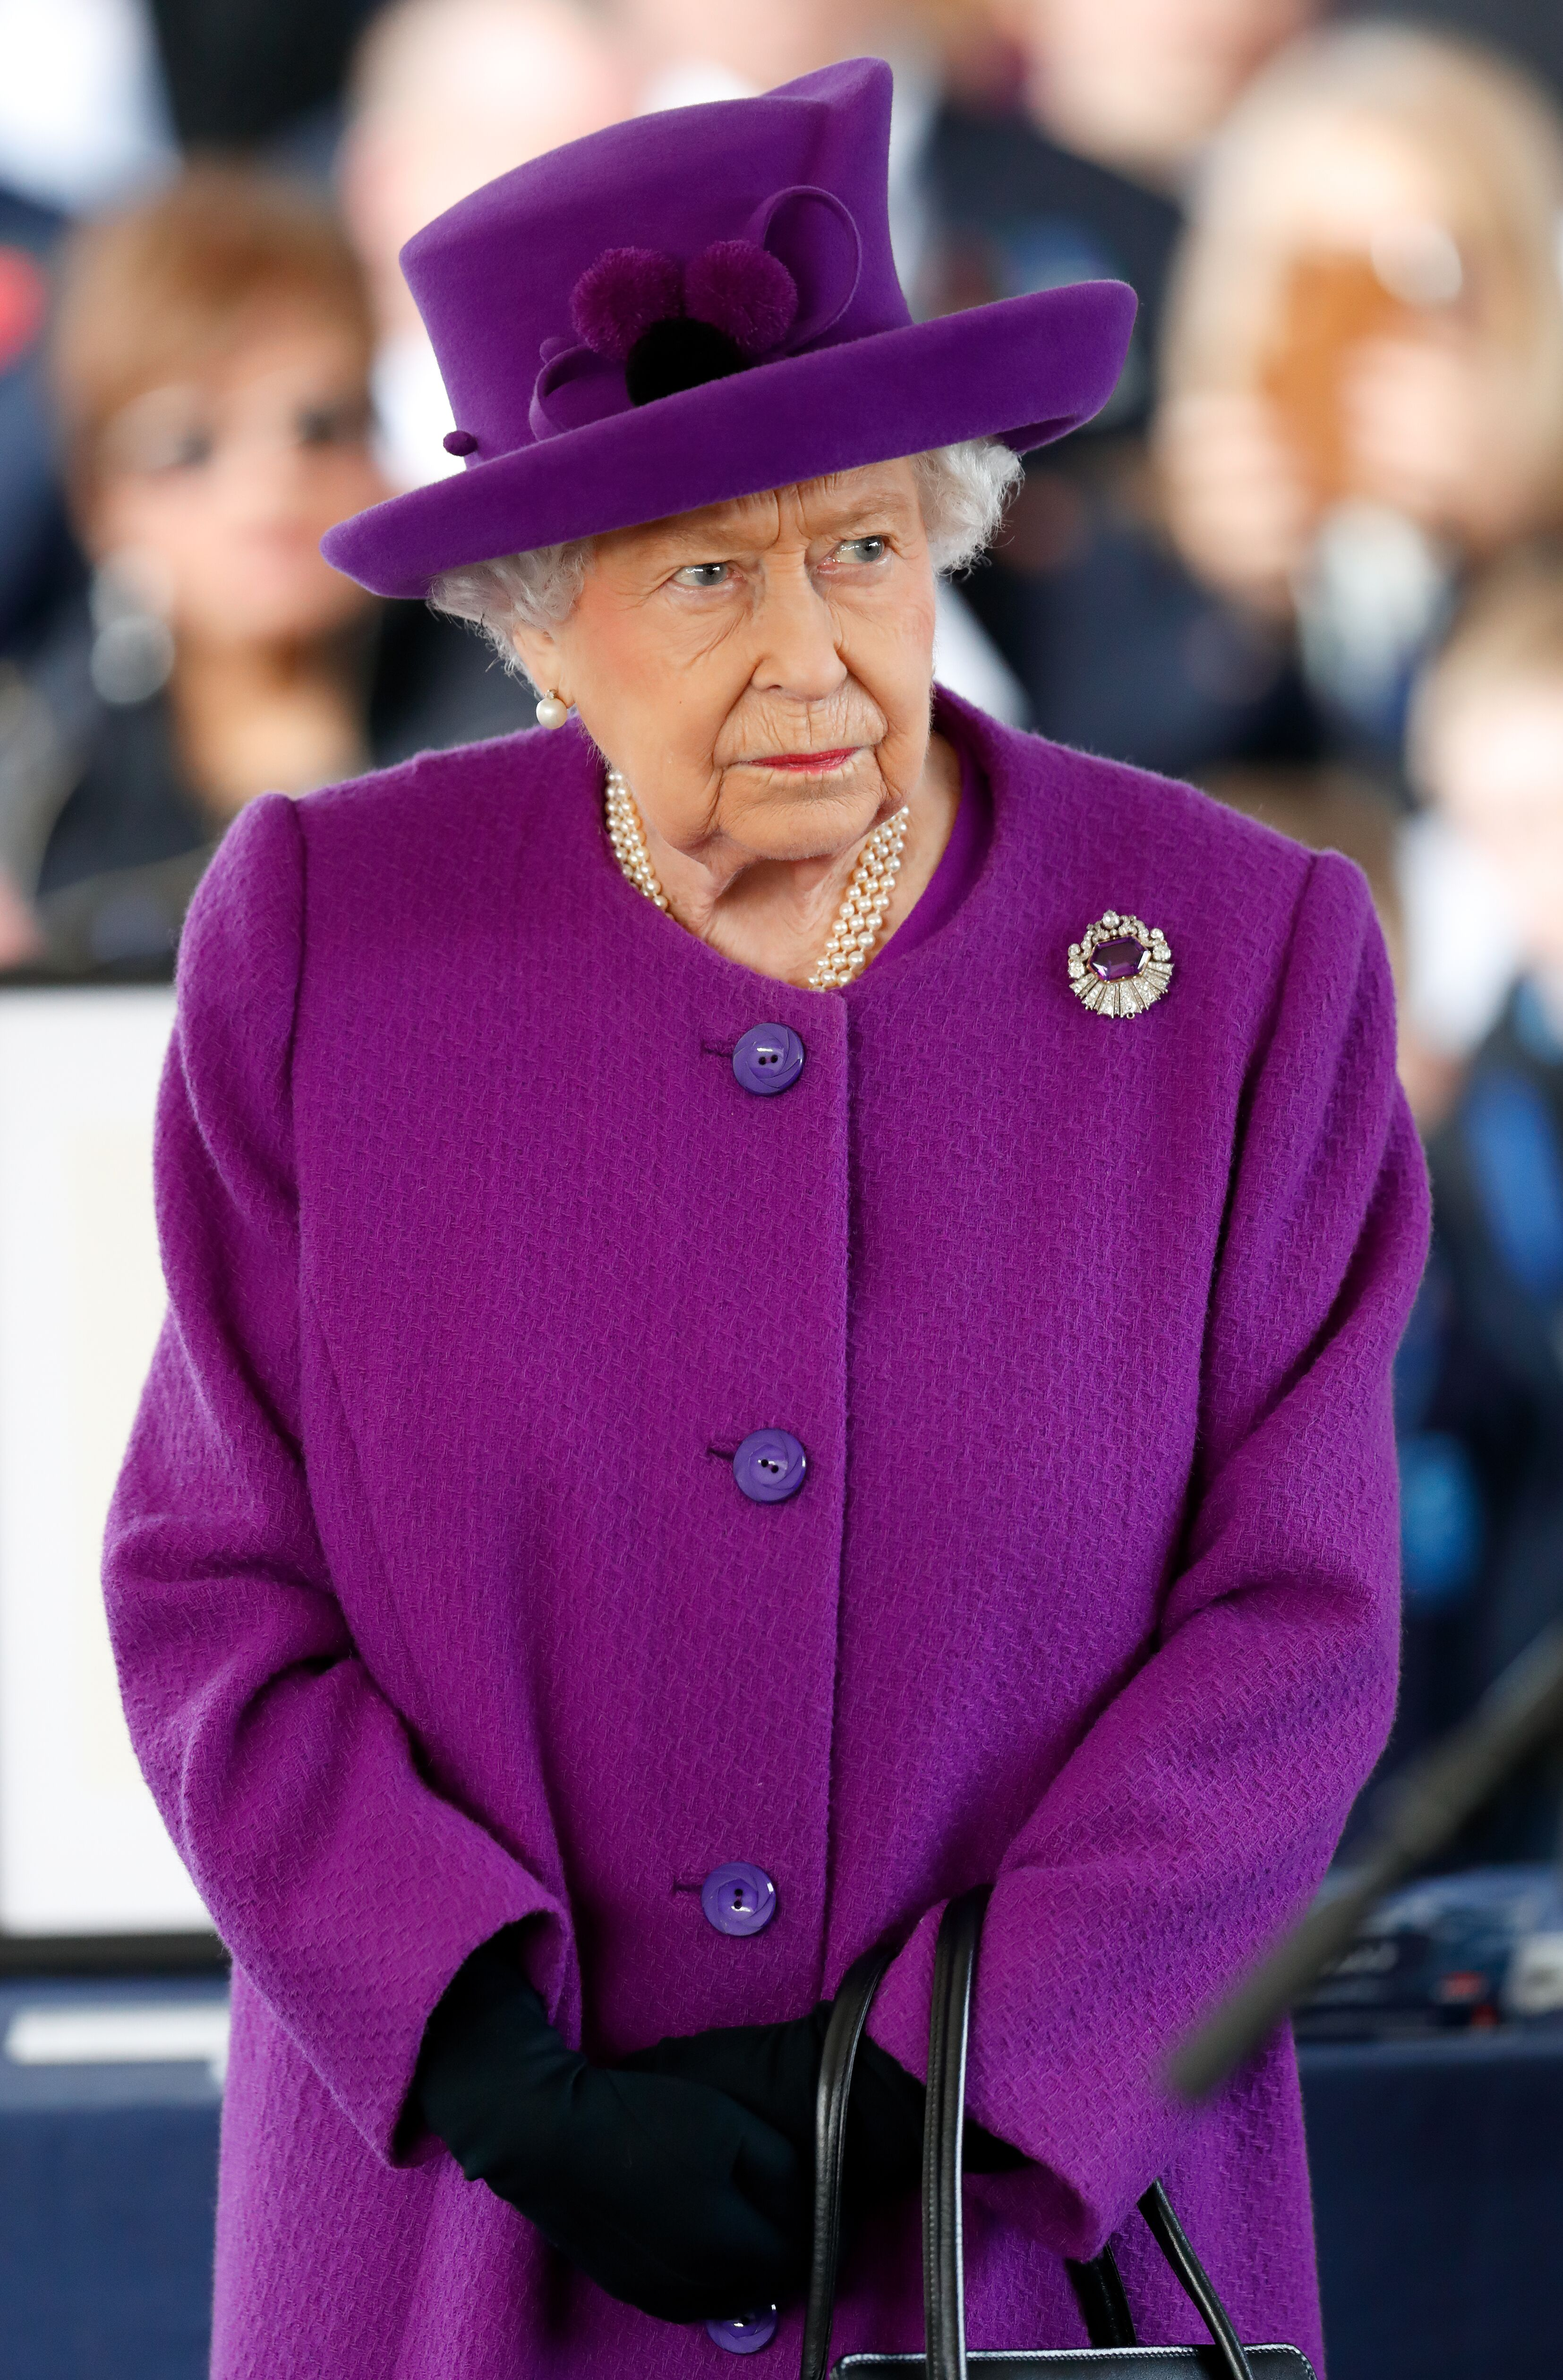 Queen Elizabeth II visits the Royal British Legion Industries village to celebrate the charity's centenary year on November 6, 2019 in Aylesford, England.   Source: Getty Images